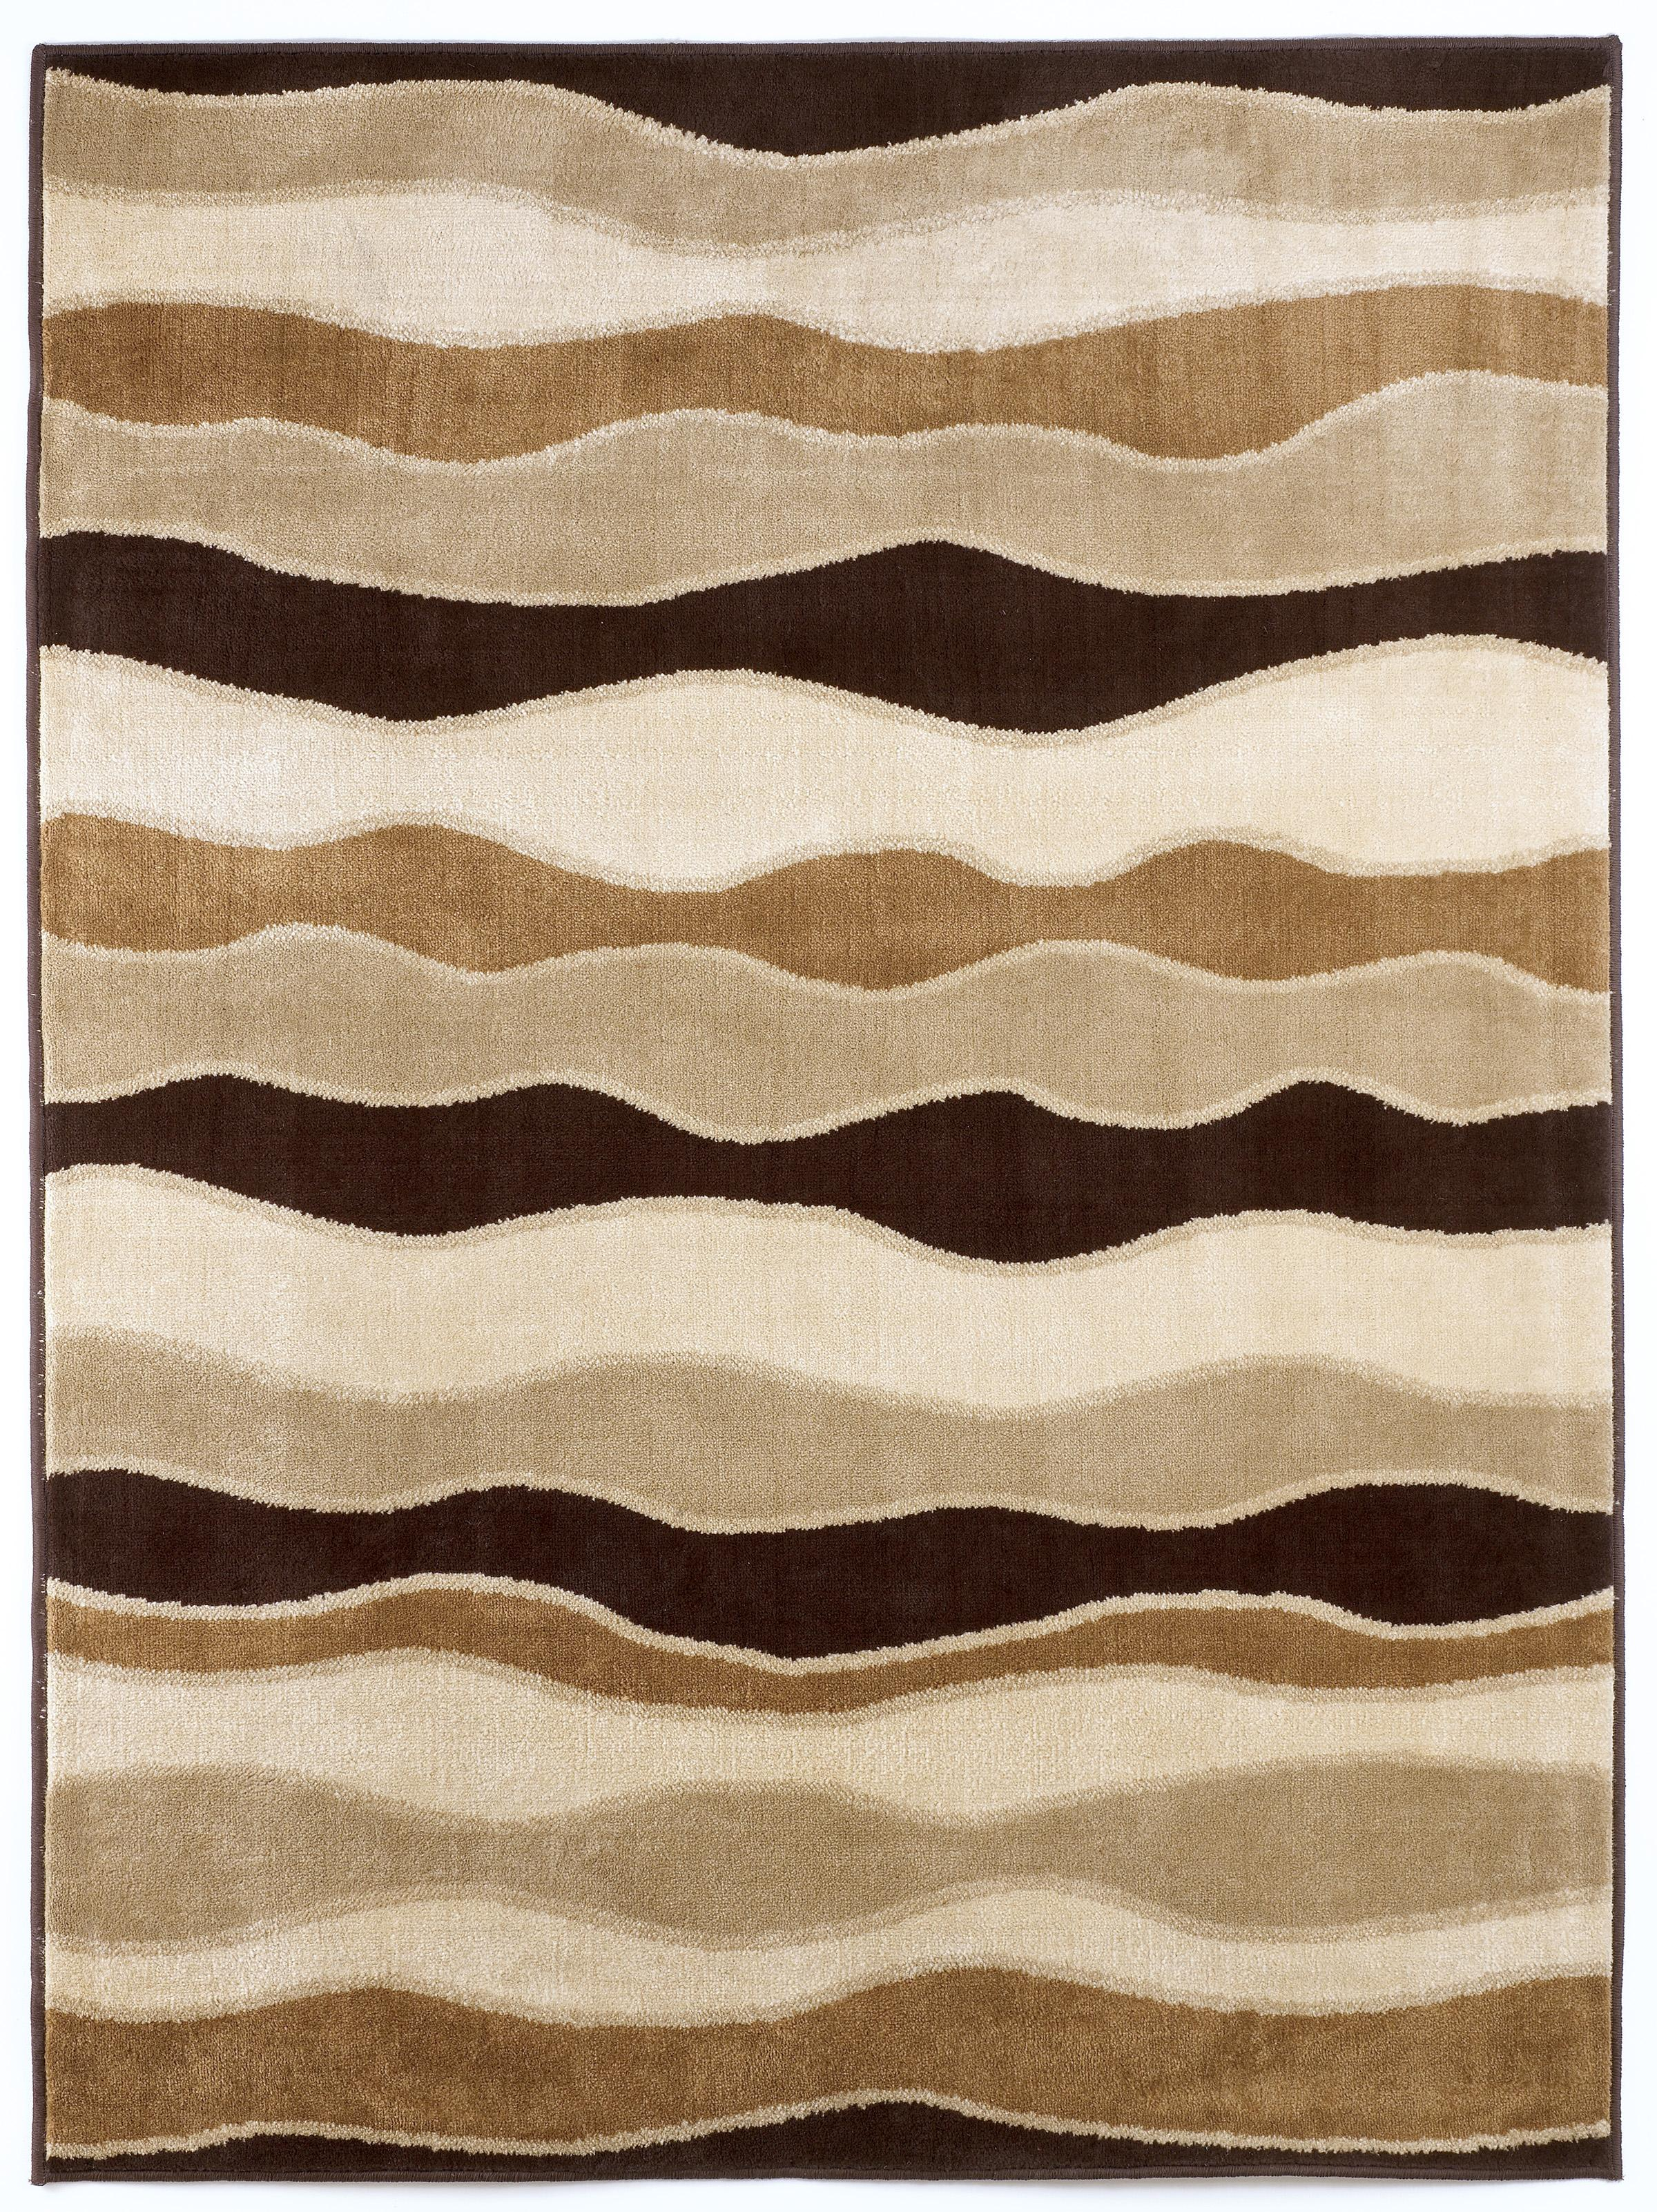 Signature Design by Ashley Contemporary Area Rugs Frequency - Toffee Rug - Item Number: R228002